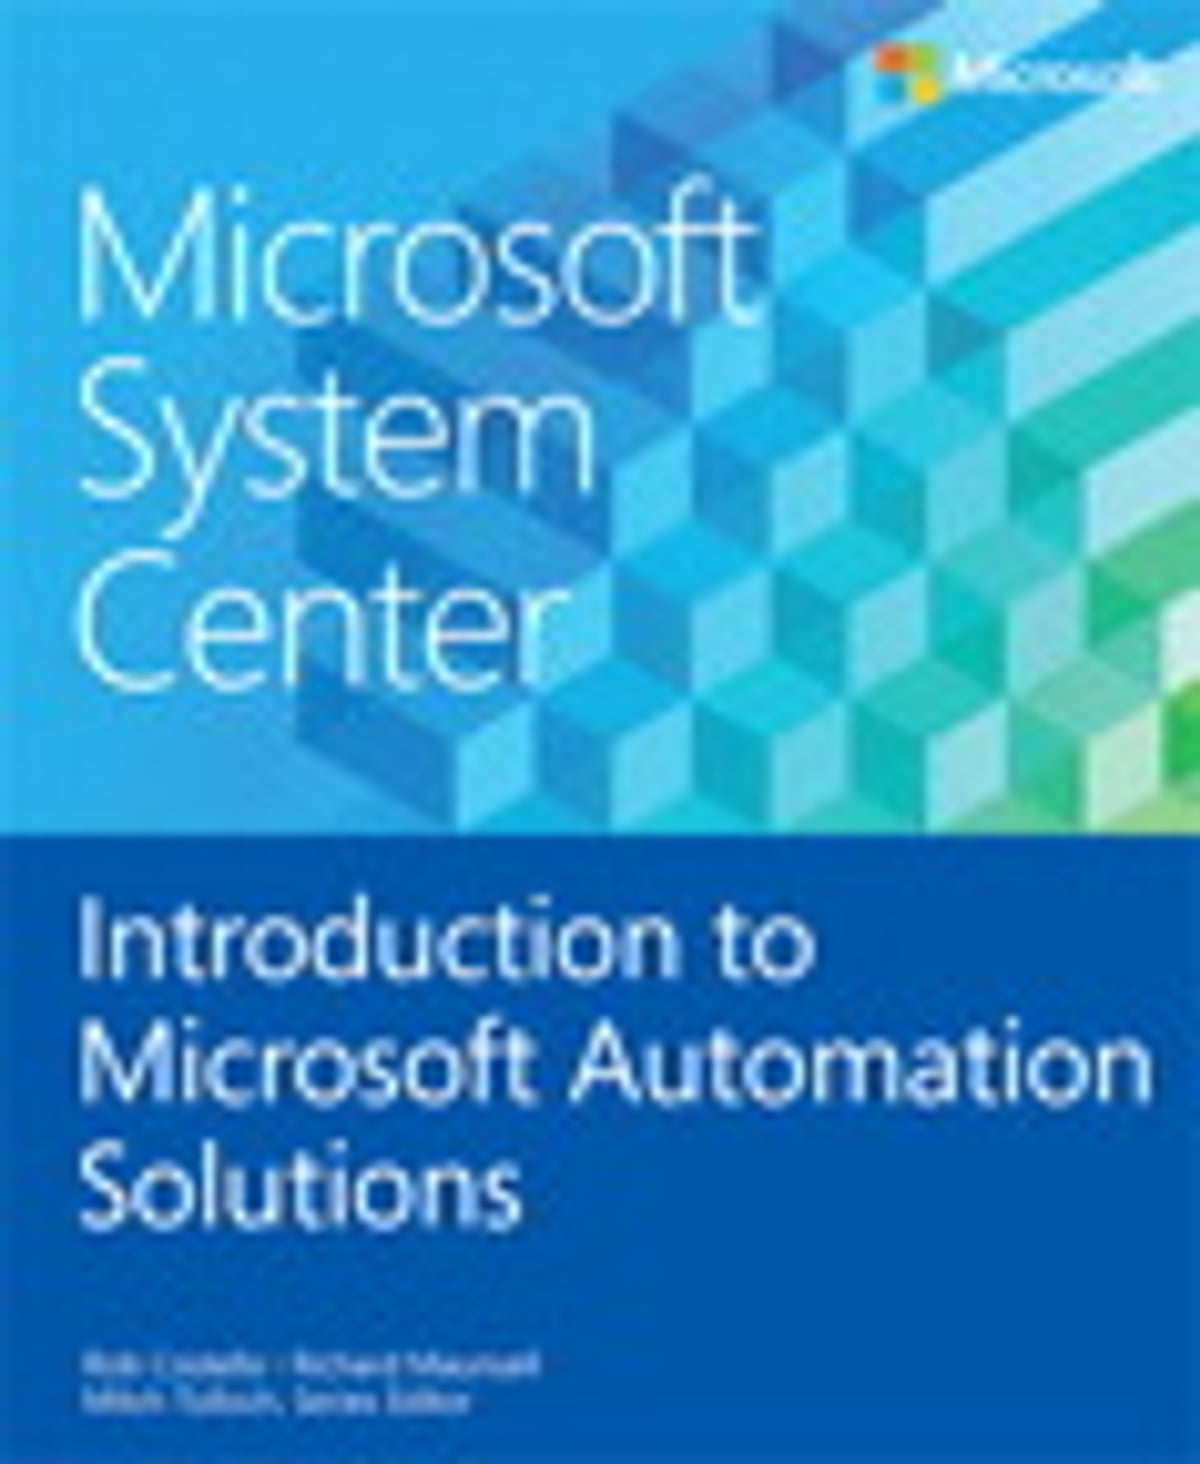 Microsoft System Center Introduction to Microsoft Automation